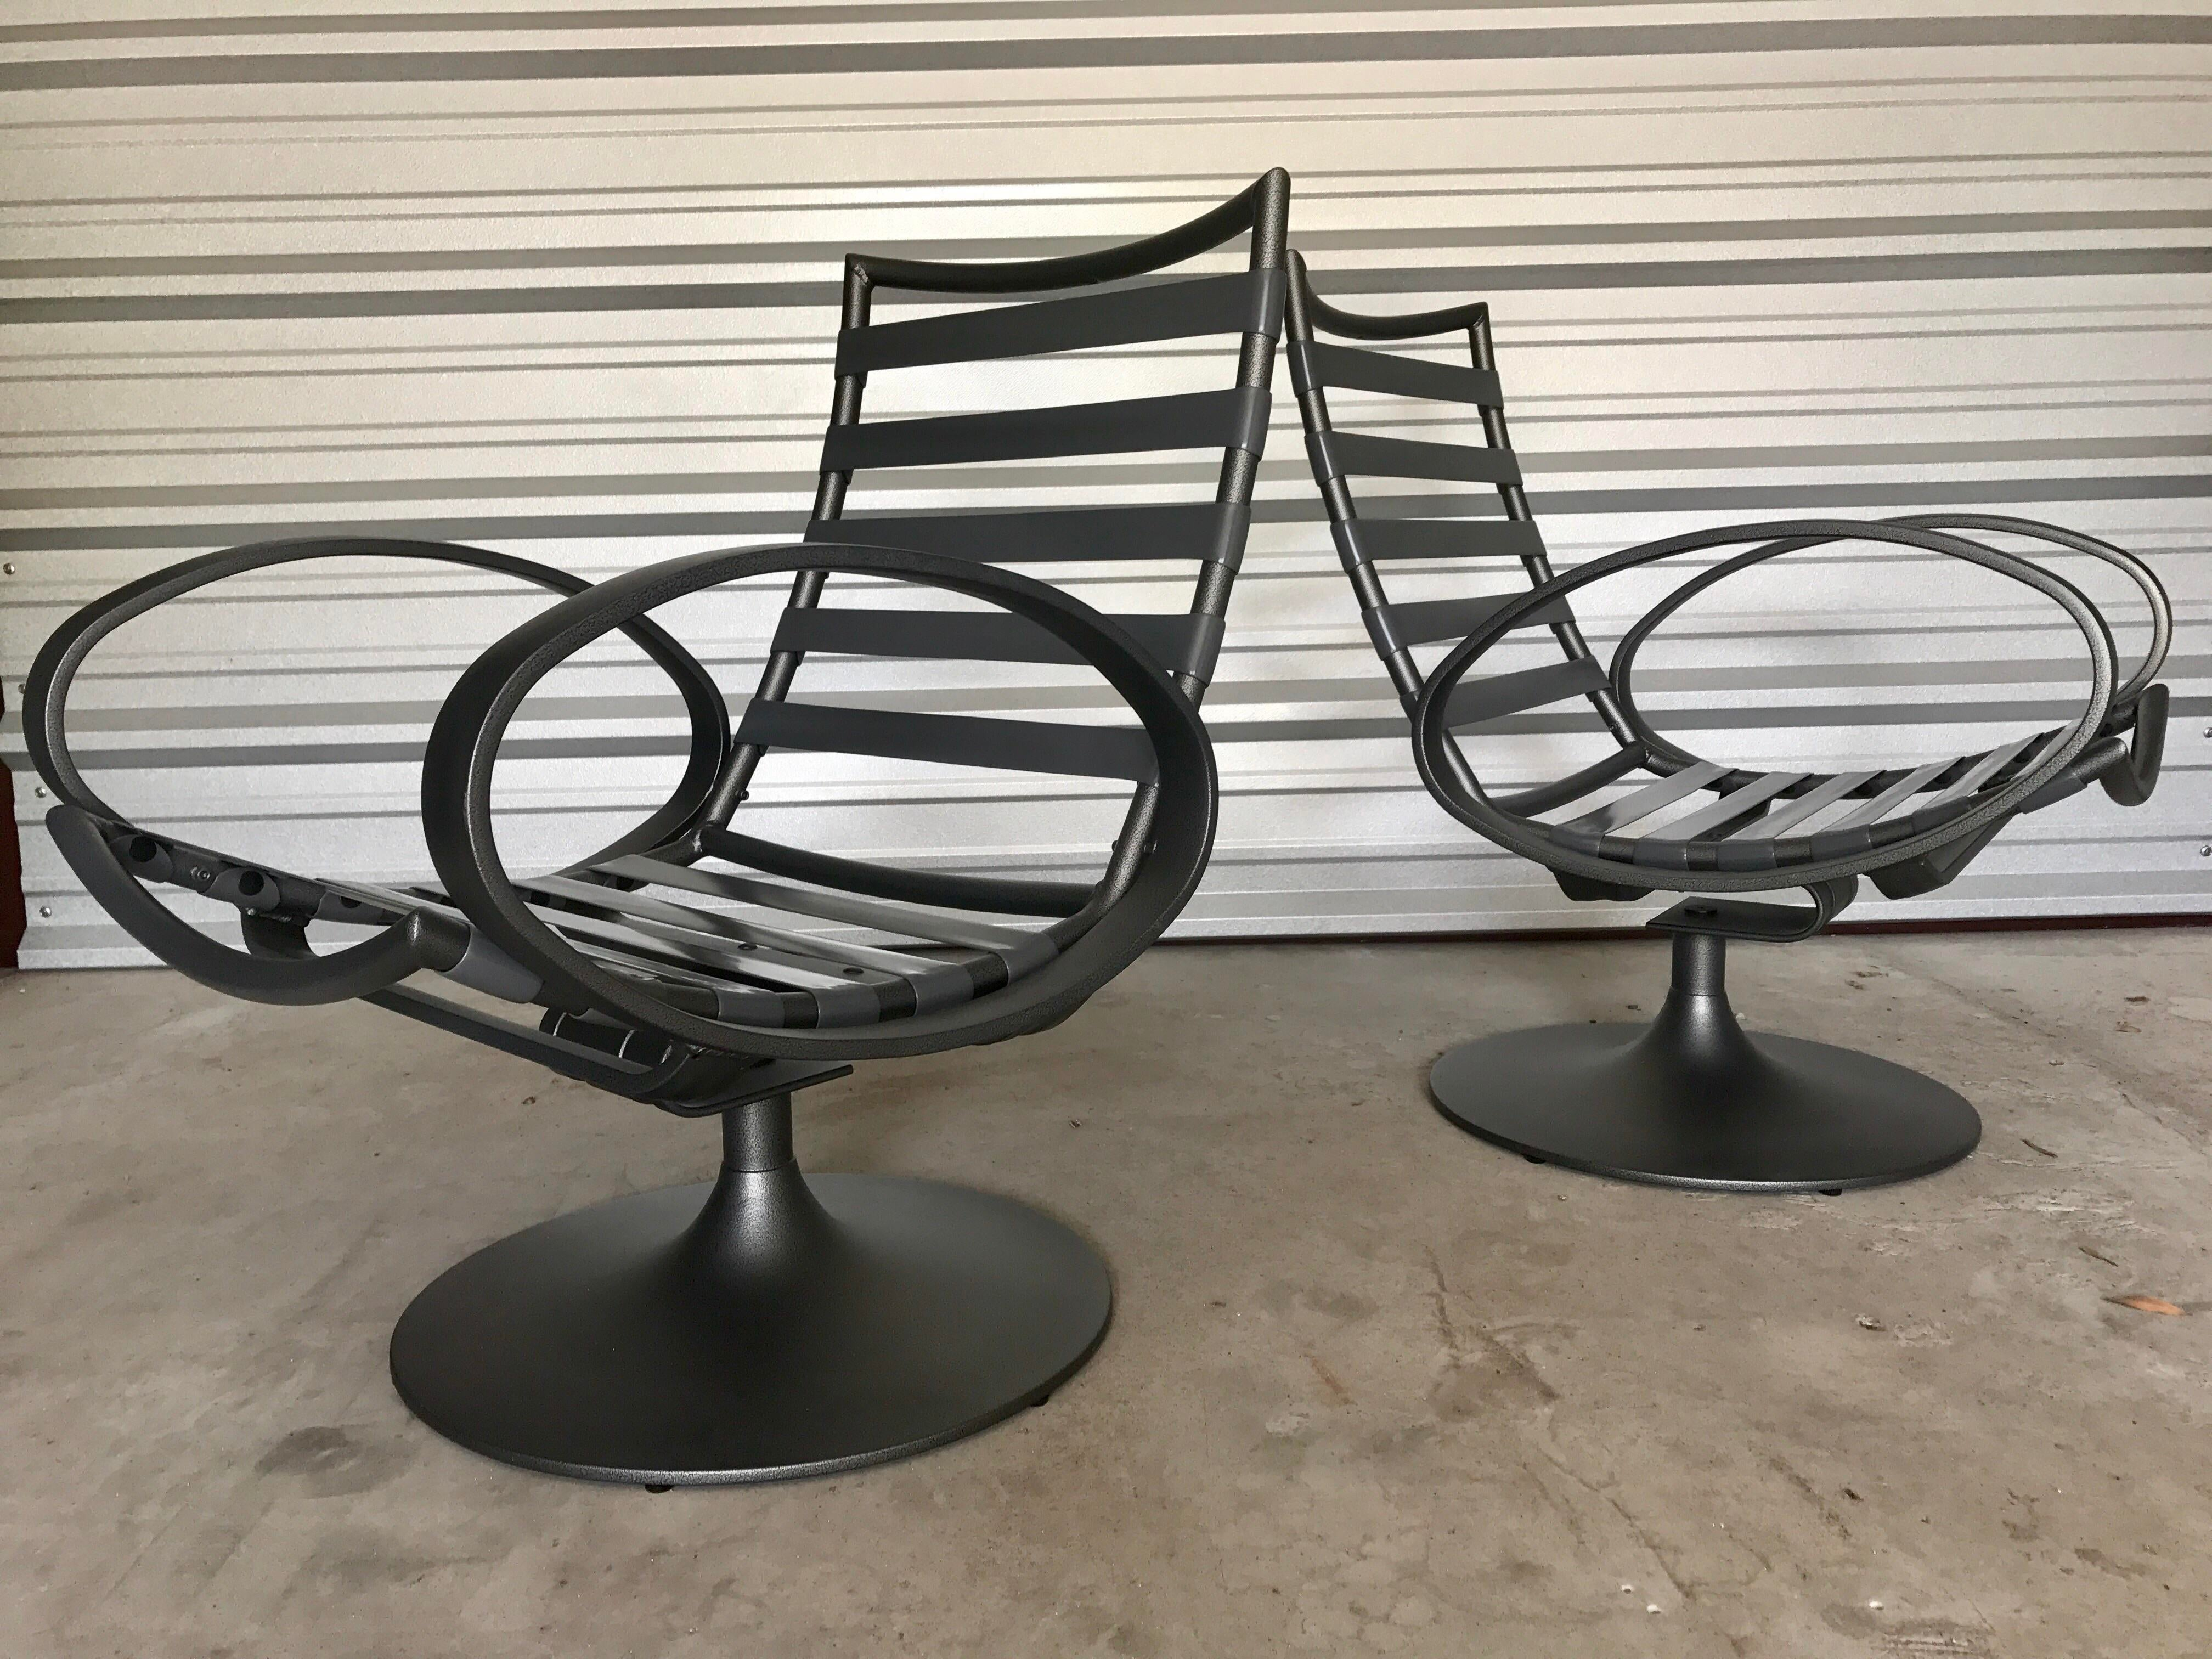 tropitone lounge chairs beauty salon hair washing chair outdoor a pair chairish rare set of two mid century modern patio swivel by great looking